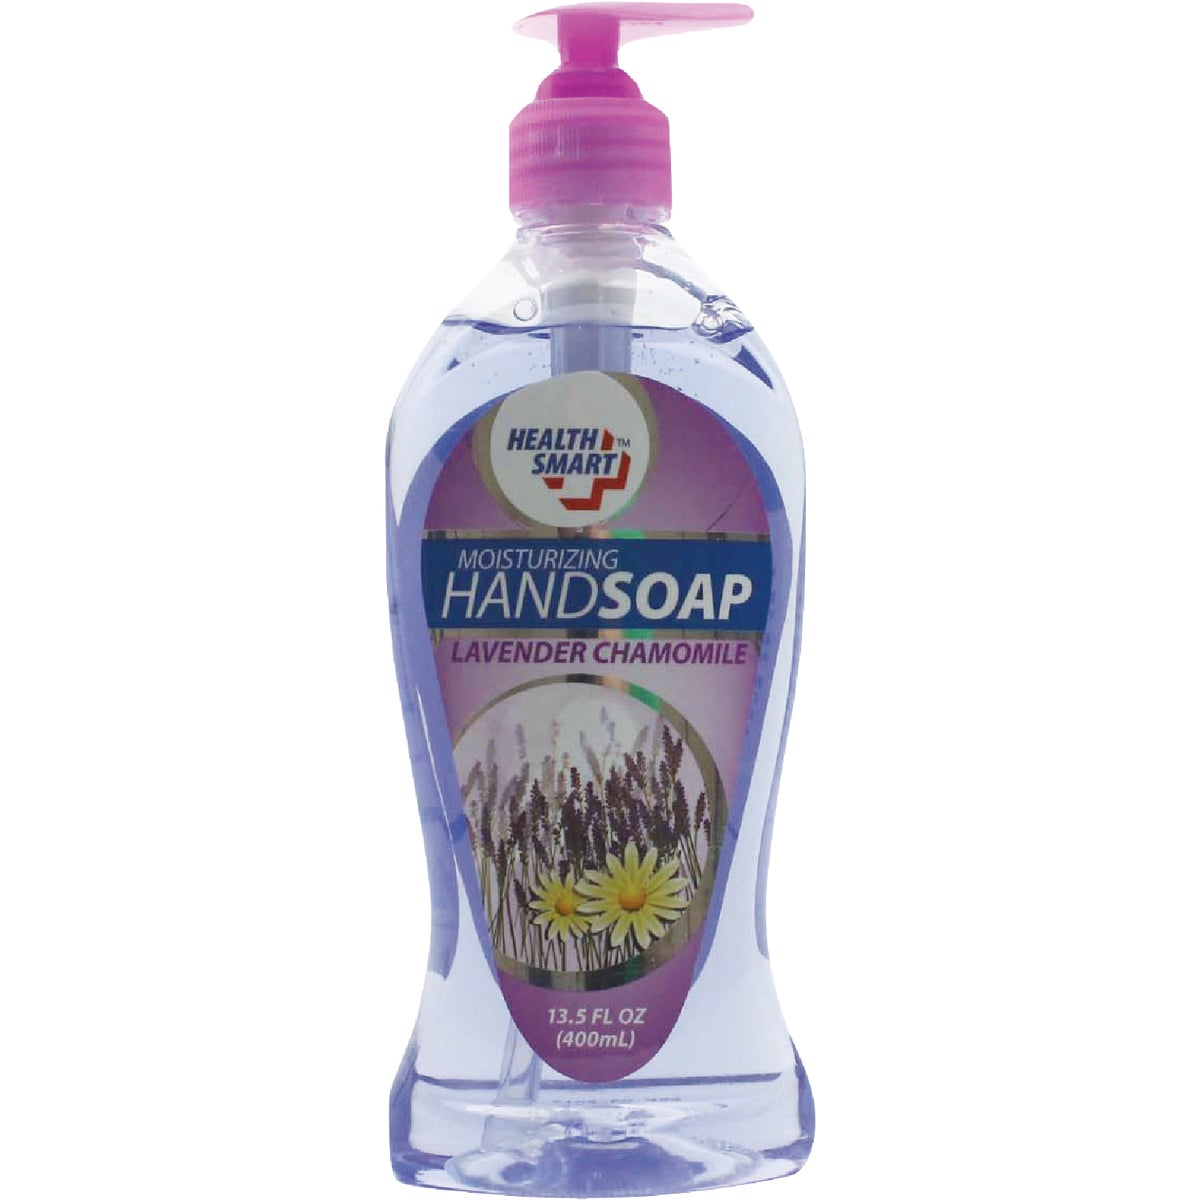 7.5OZ BERRY HAND SOAP - 90664 by Personal Care Prod